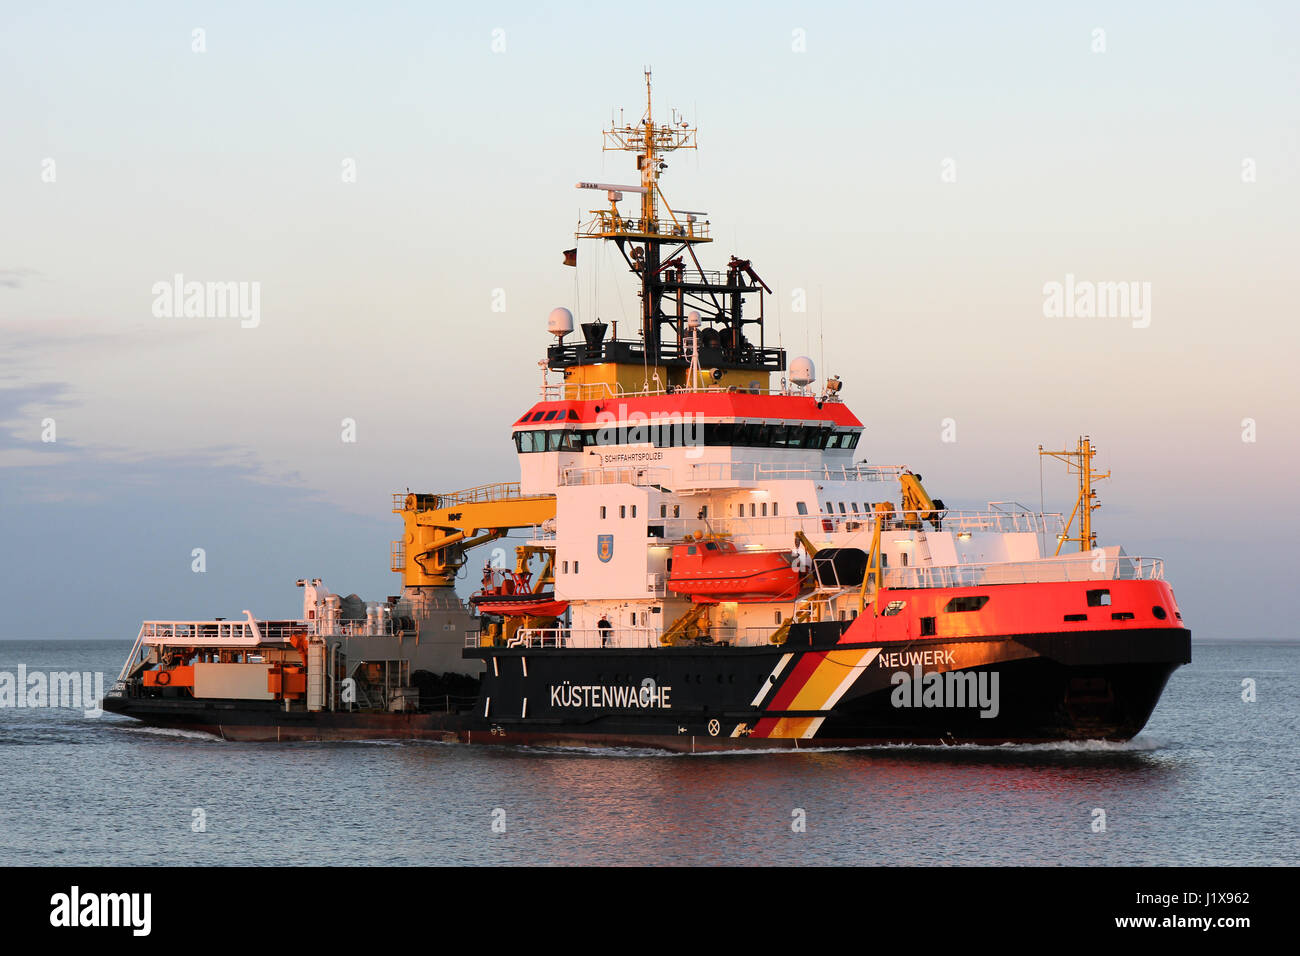 multi-purpose vessel NEUWERK on the river Elbe. The Kustenwache is an association of several federal agencies. - Stock Image